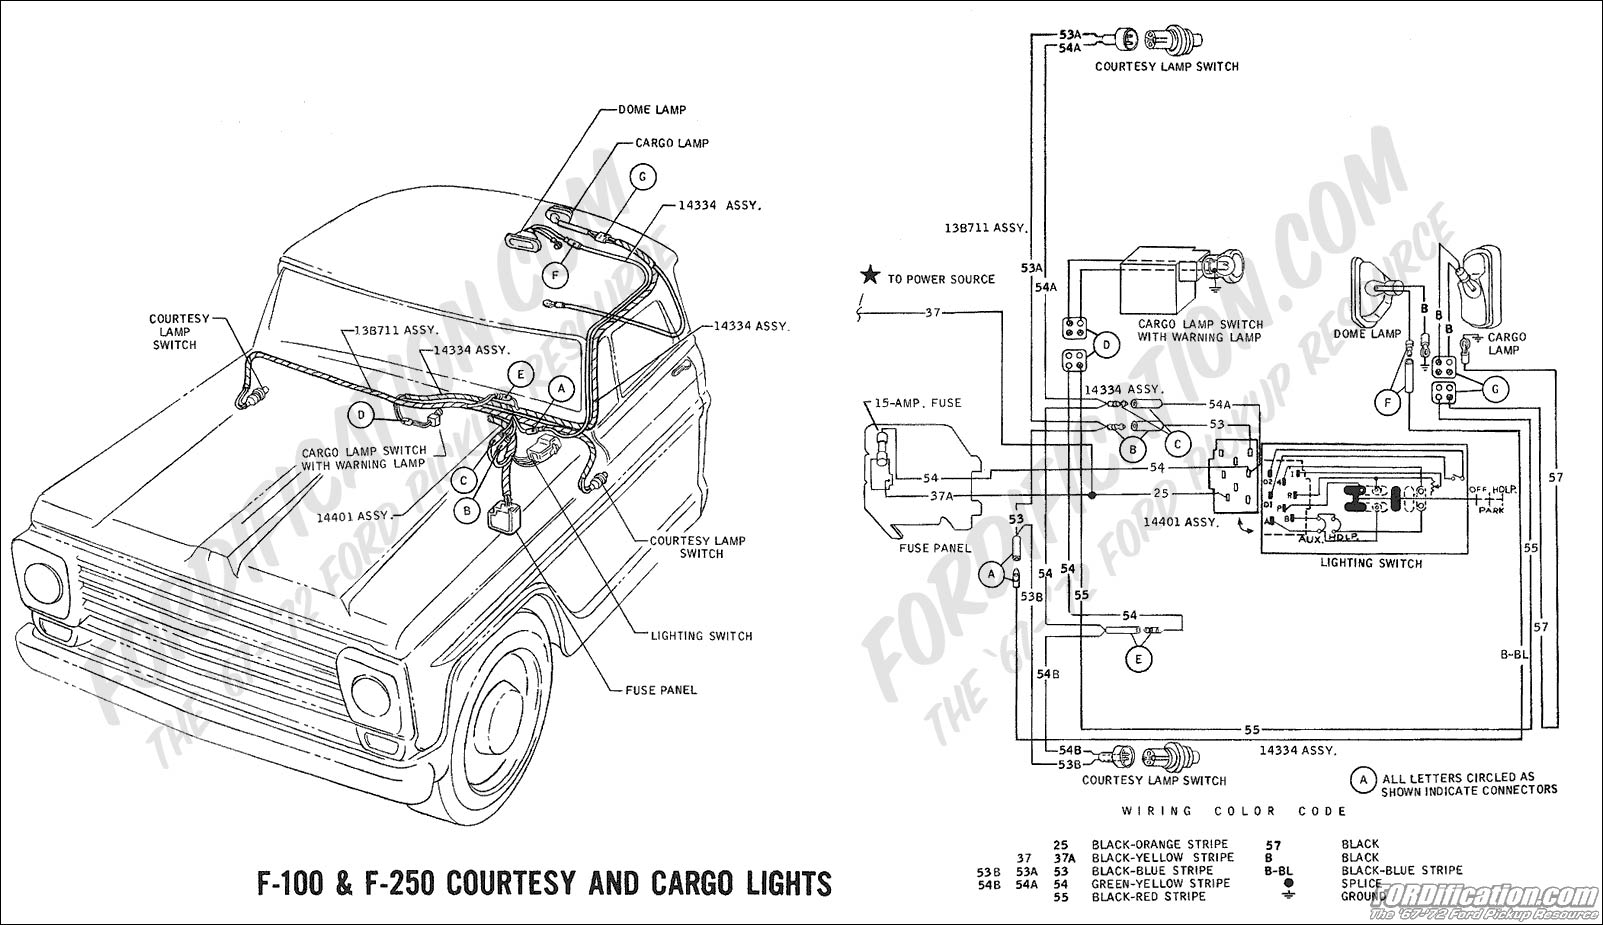 1970 ford f 250 wiring diagram wiring diagram u2022 rh tinyforge co 1996 Ford F-250 Wiring Diagram 1977 Ford Truck Wiring Diagrams